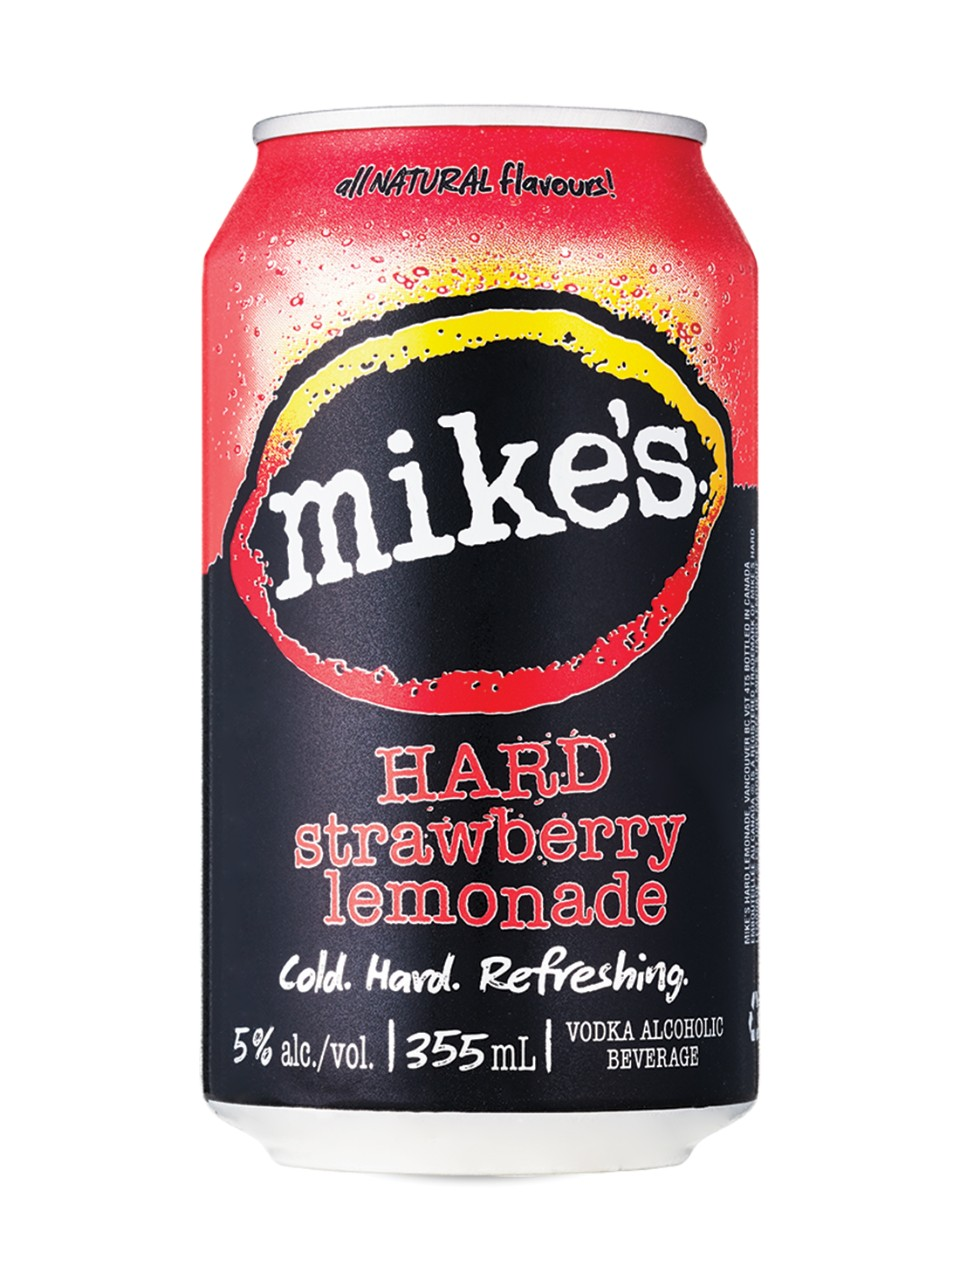 lemonade get How drunk to harder mikes many